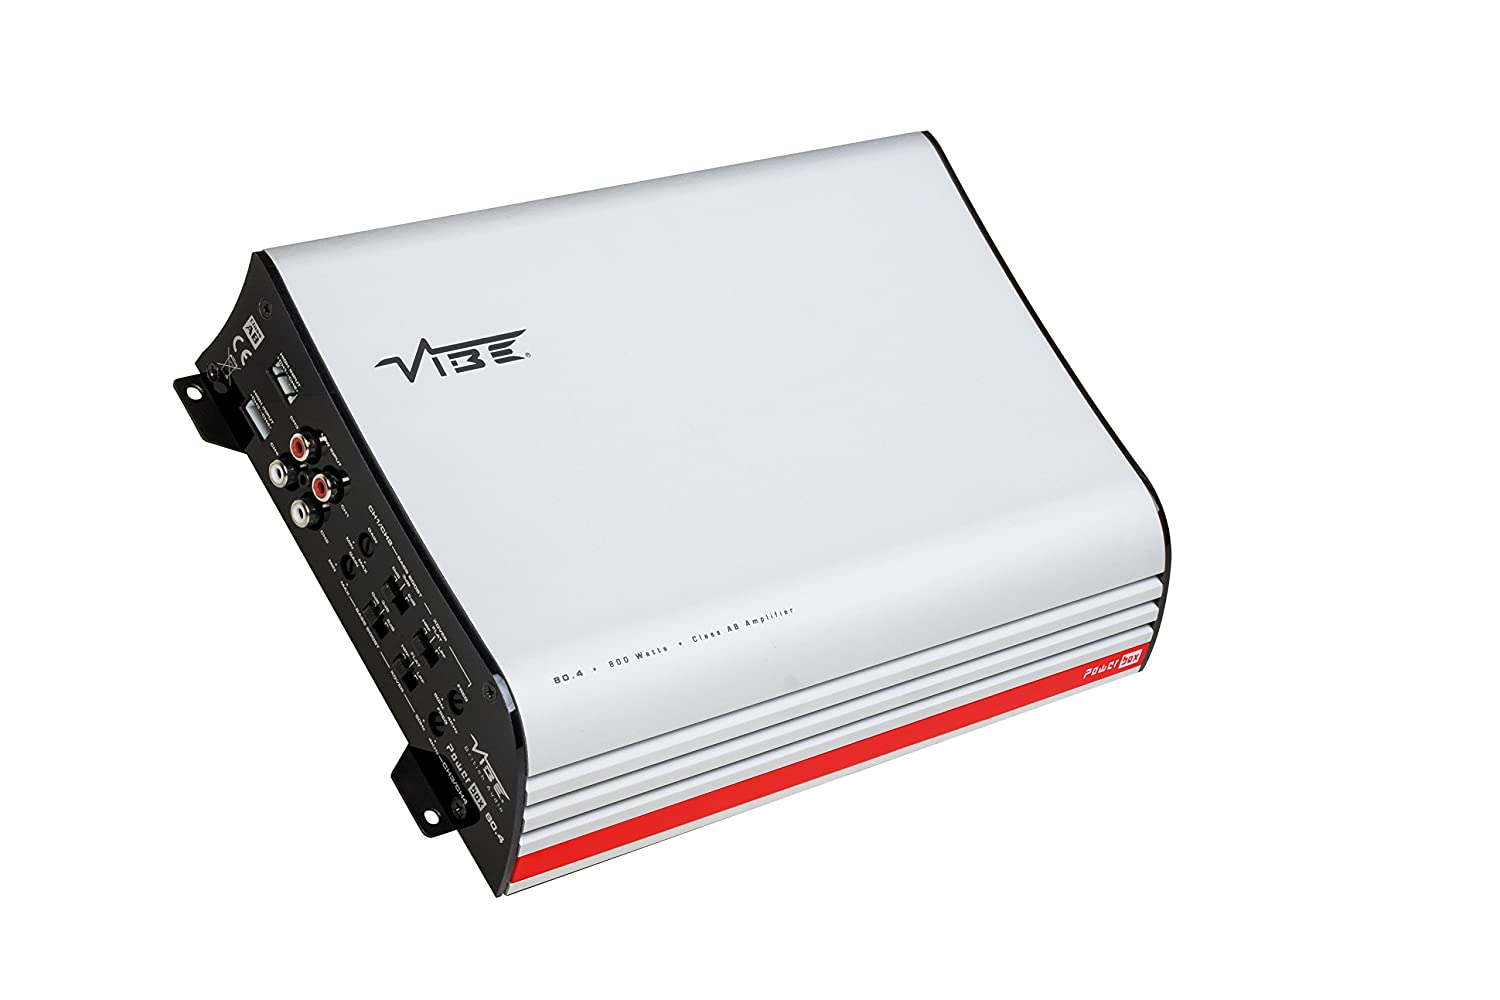 VIBE POWERBOX80.4-V7 4 Channel Stereo amplifier 800w Max Power